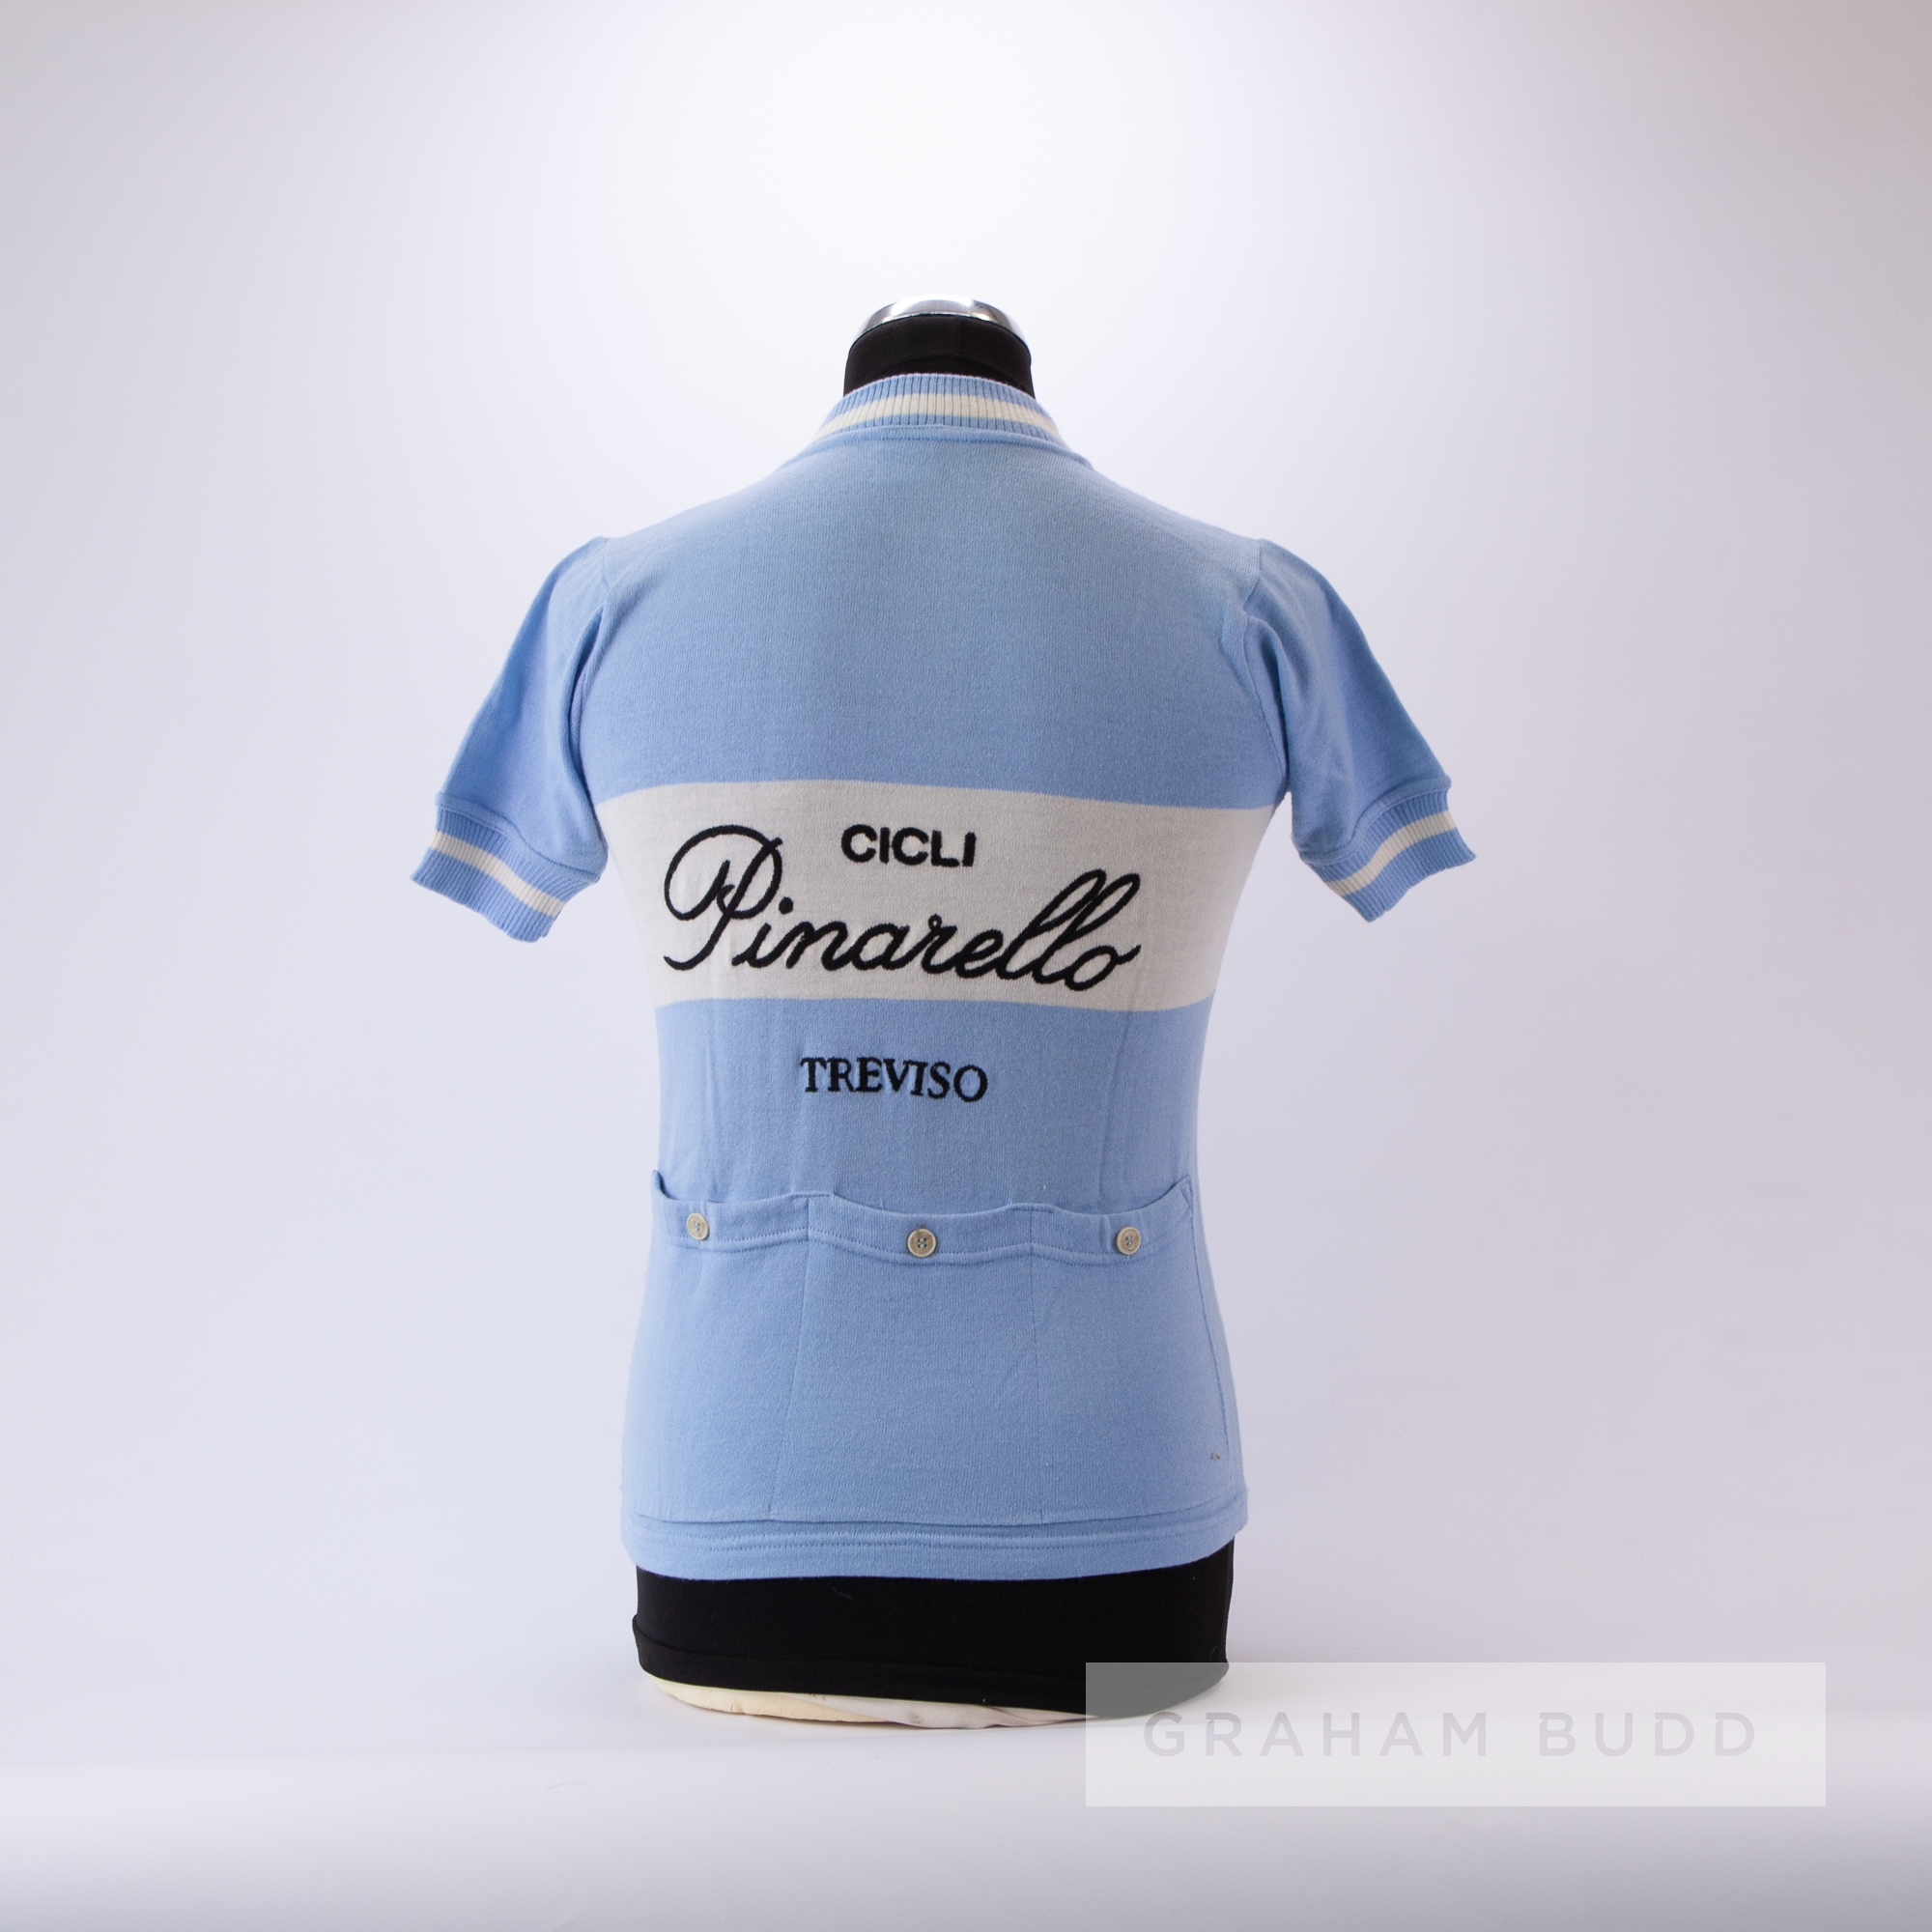 1970s light blue and white vintage Cicli Pinarello Cycling race jersey, scarce, wool short-sleeved - Image 4 of 4